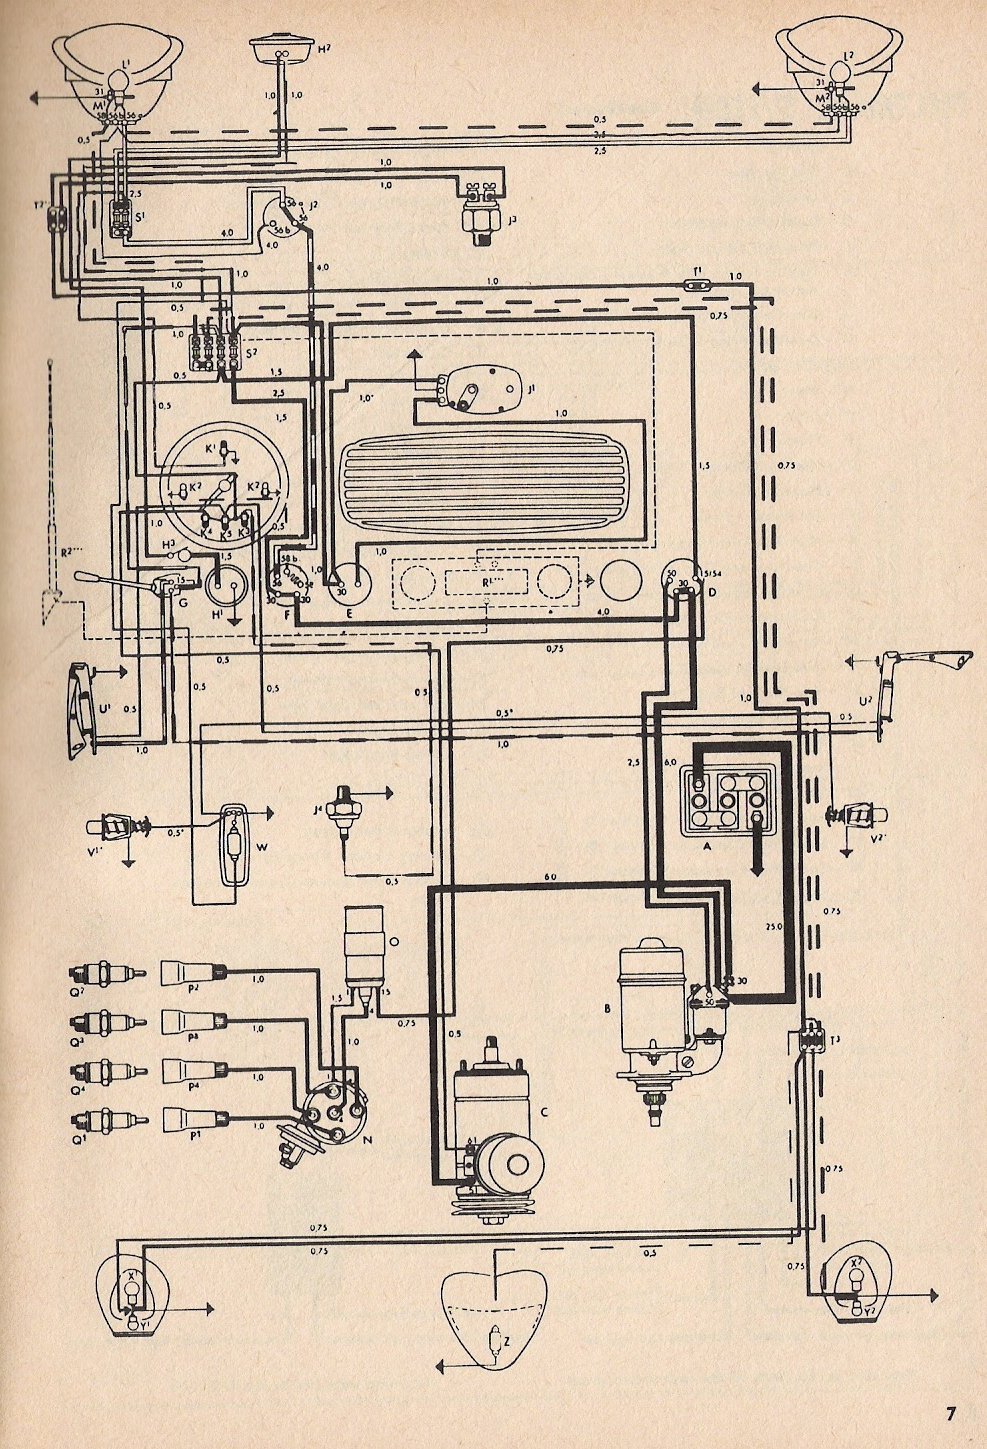 hight resolution of 1958 imperial wiring diagram